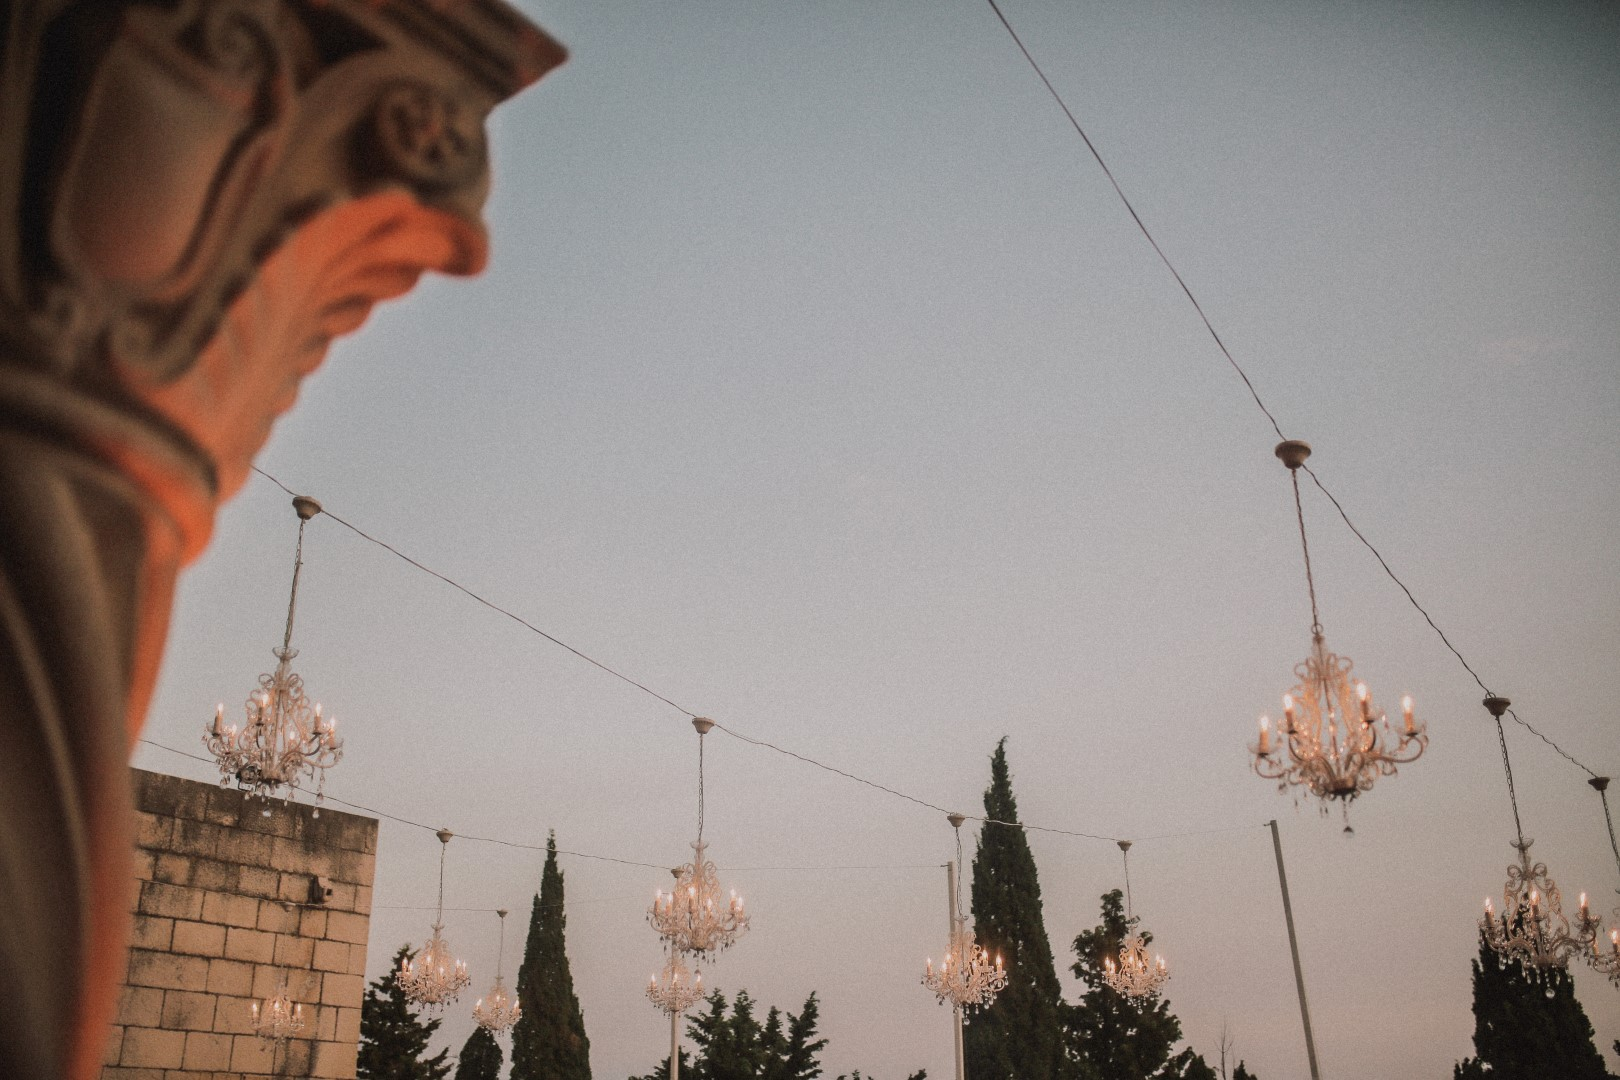 This photo is showing chandeliers hanging on a string tied between the columns. There is a little part of the column as well as tops of trees and the sky.